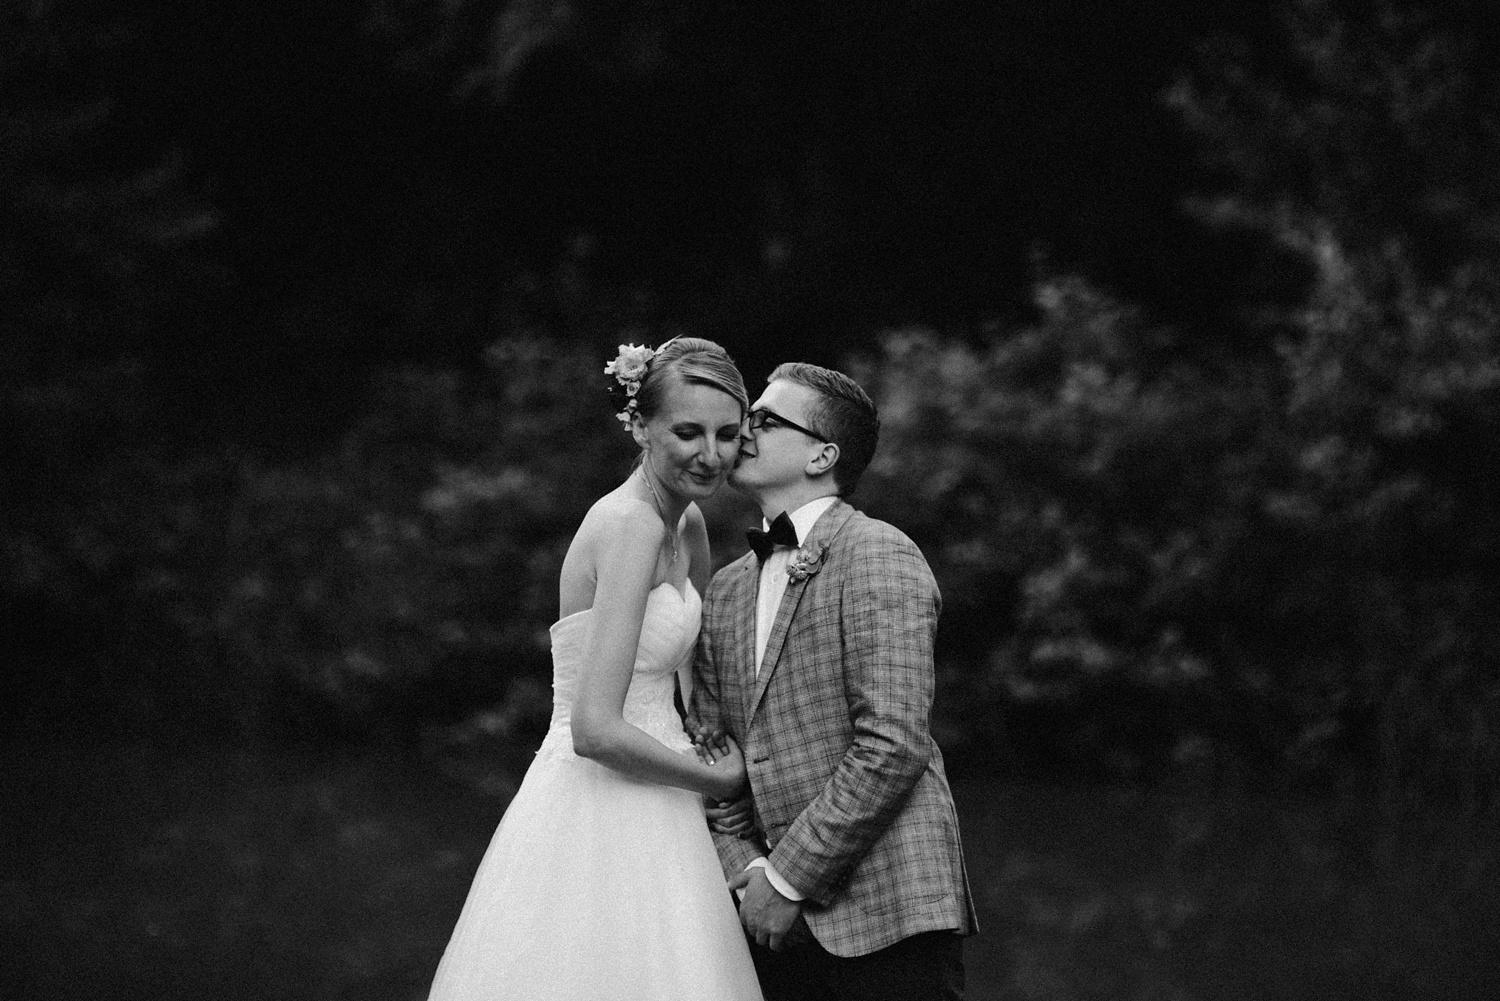 Wedding photographer Belgium Ardennes - Olle and Gosia_0048.jpg